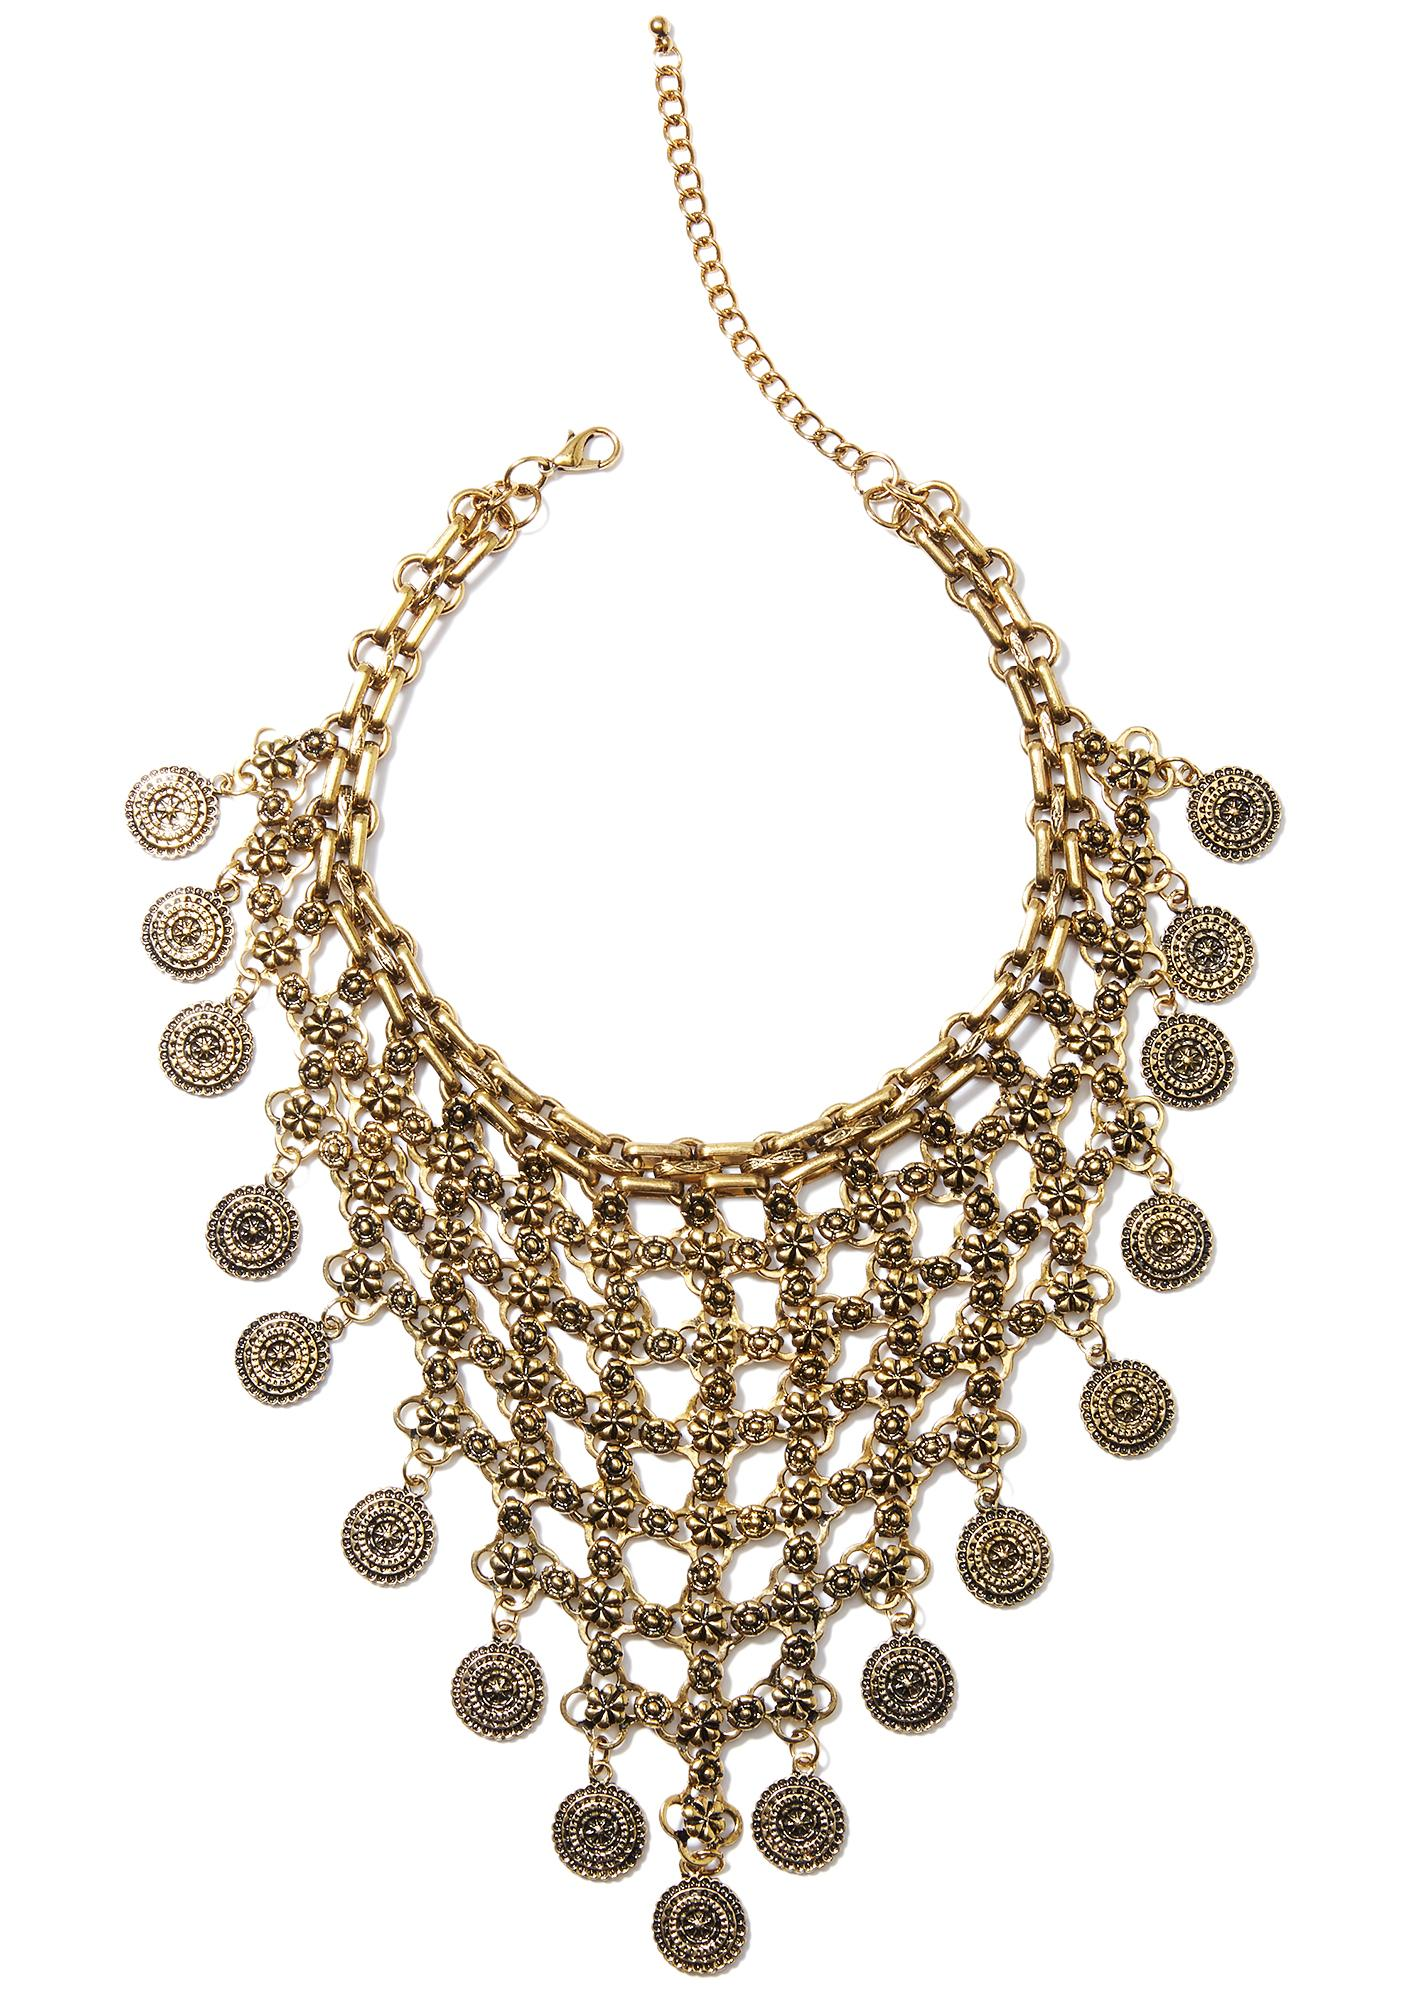 Treasure Chest Gold Necklace